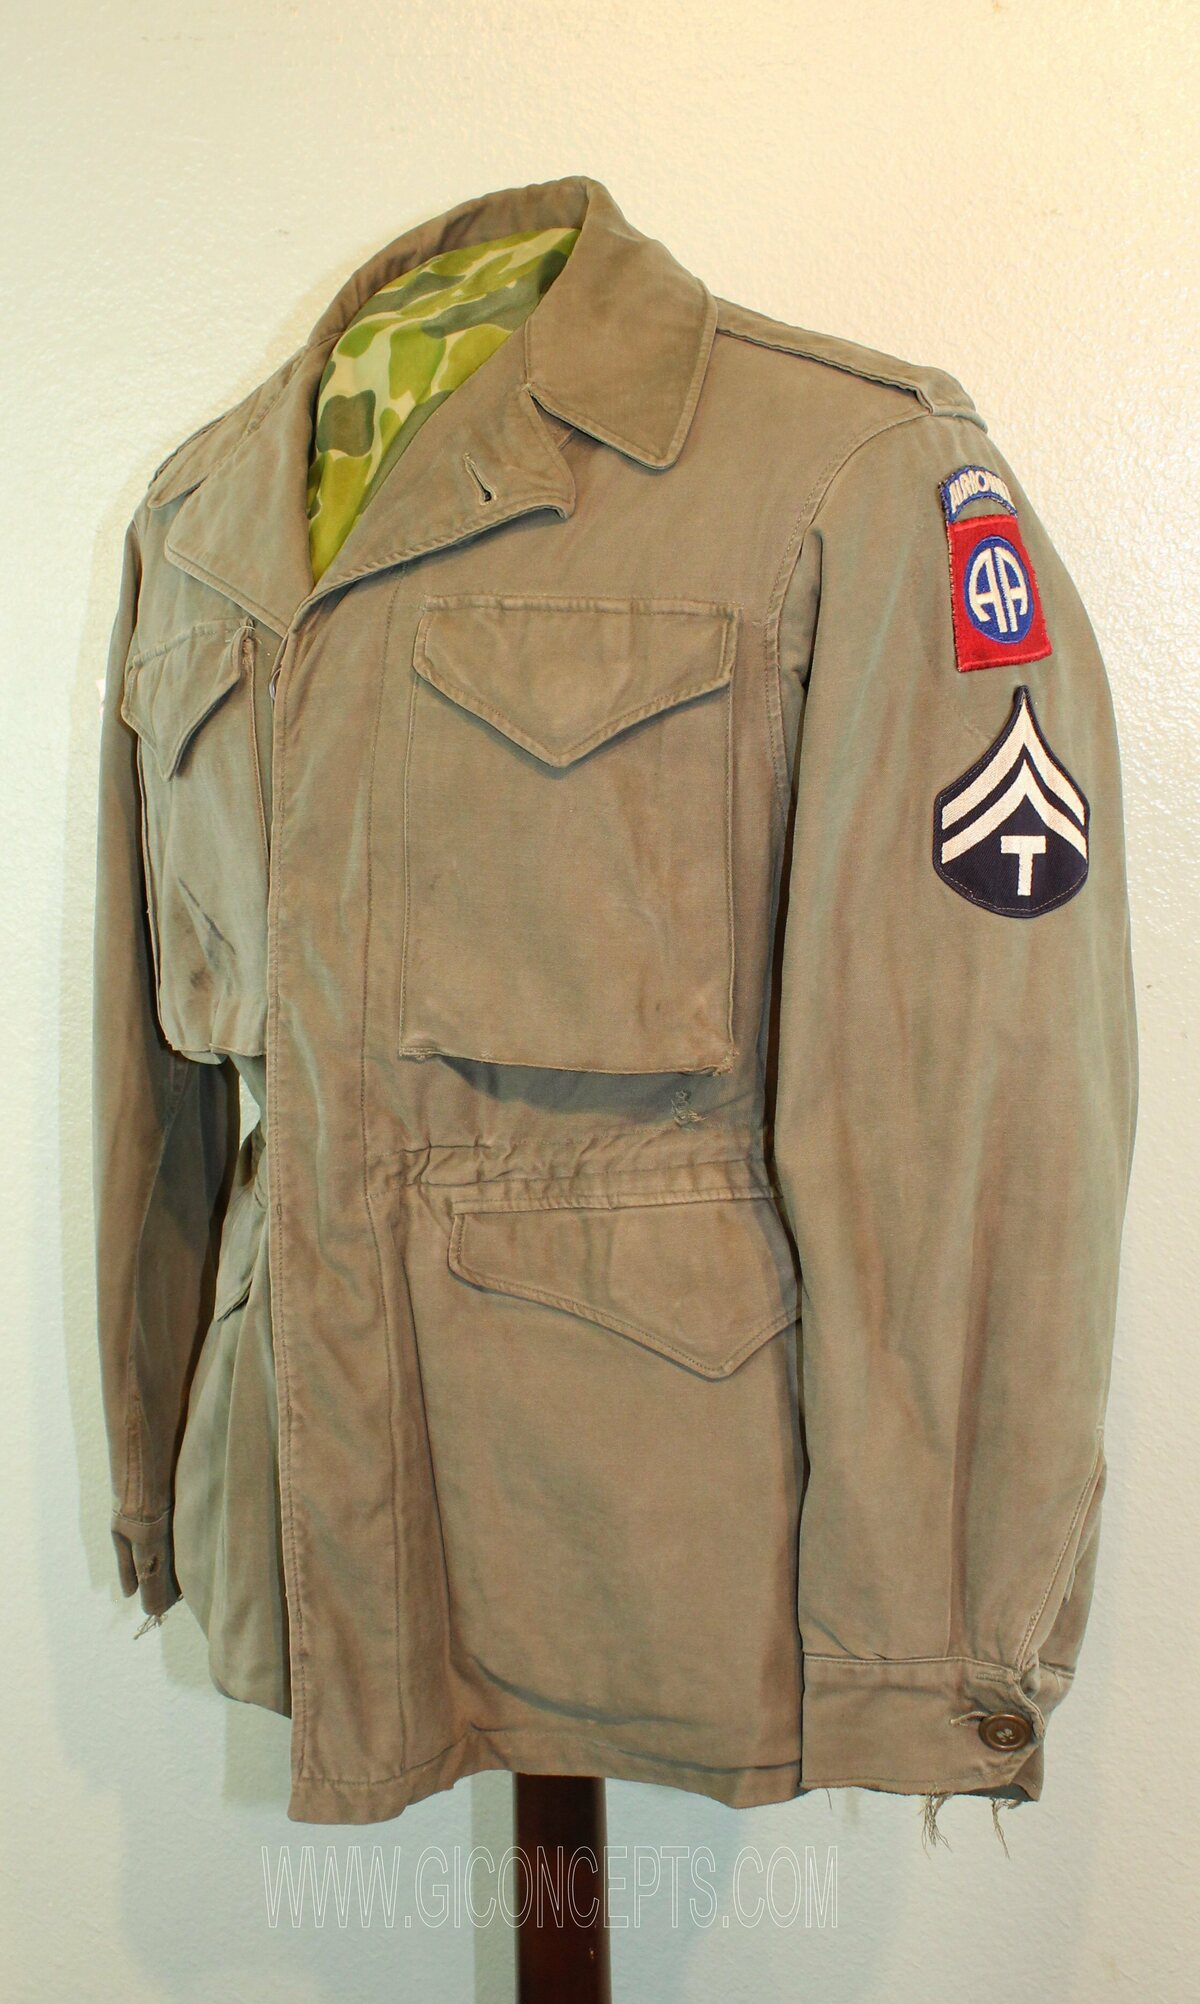 82nd Airborne T-5 M43 Jacket